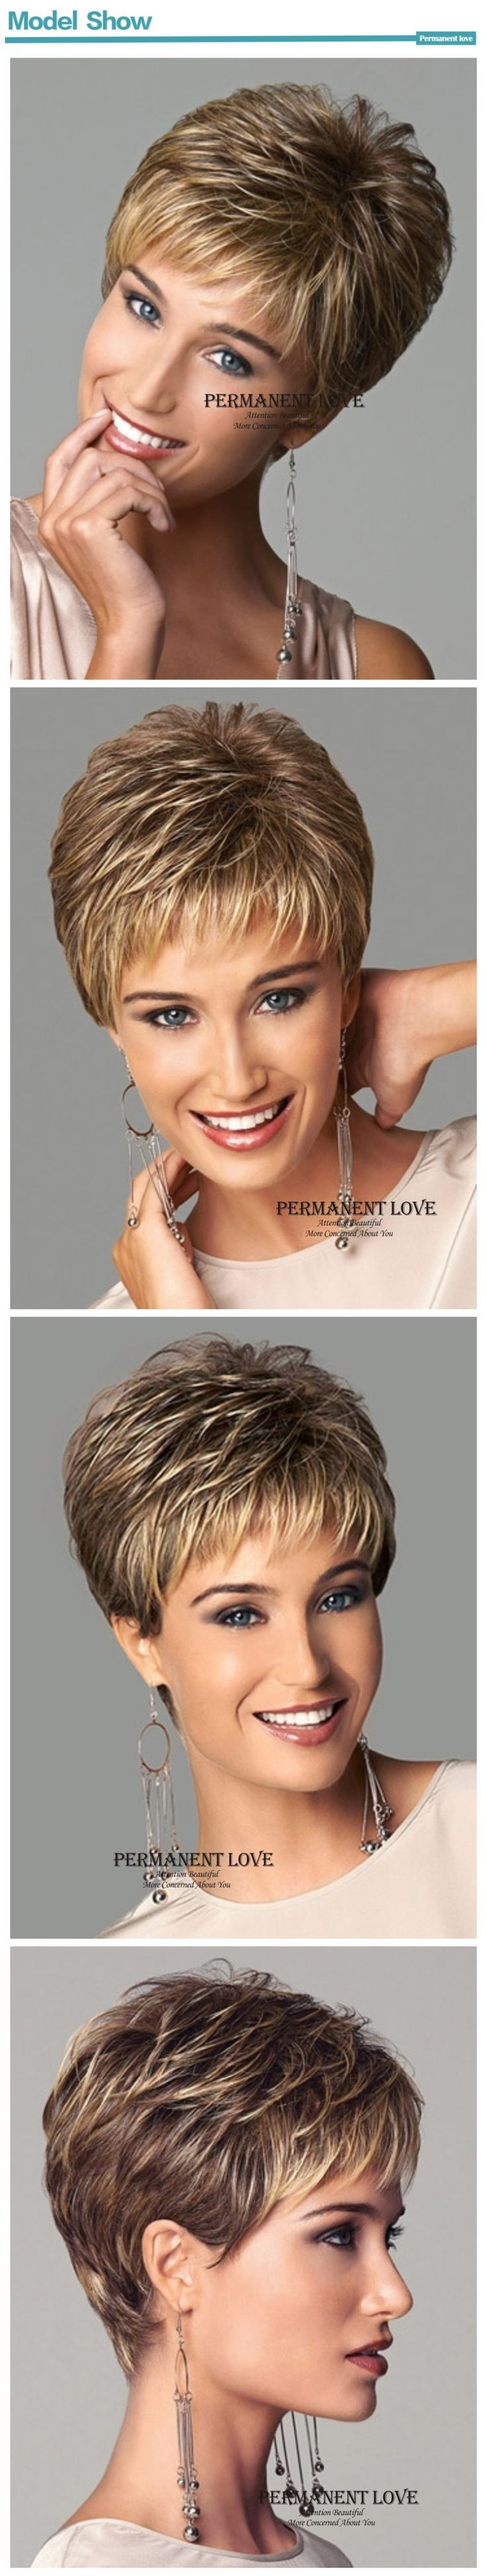 www.amazon.com/dp/B071H7WKTW  Short Pixie Cut Ladies wig Brown mixed Golden Blonde Highlights Synthetic Haircut Layered with bangs wig For Mother